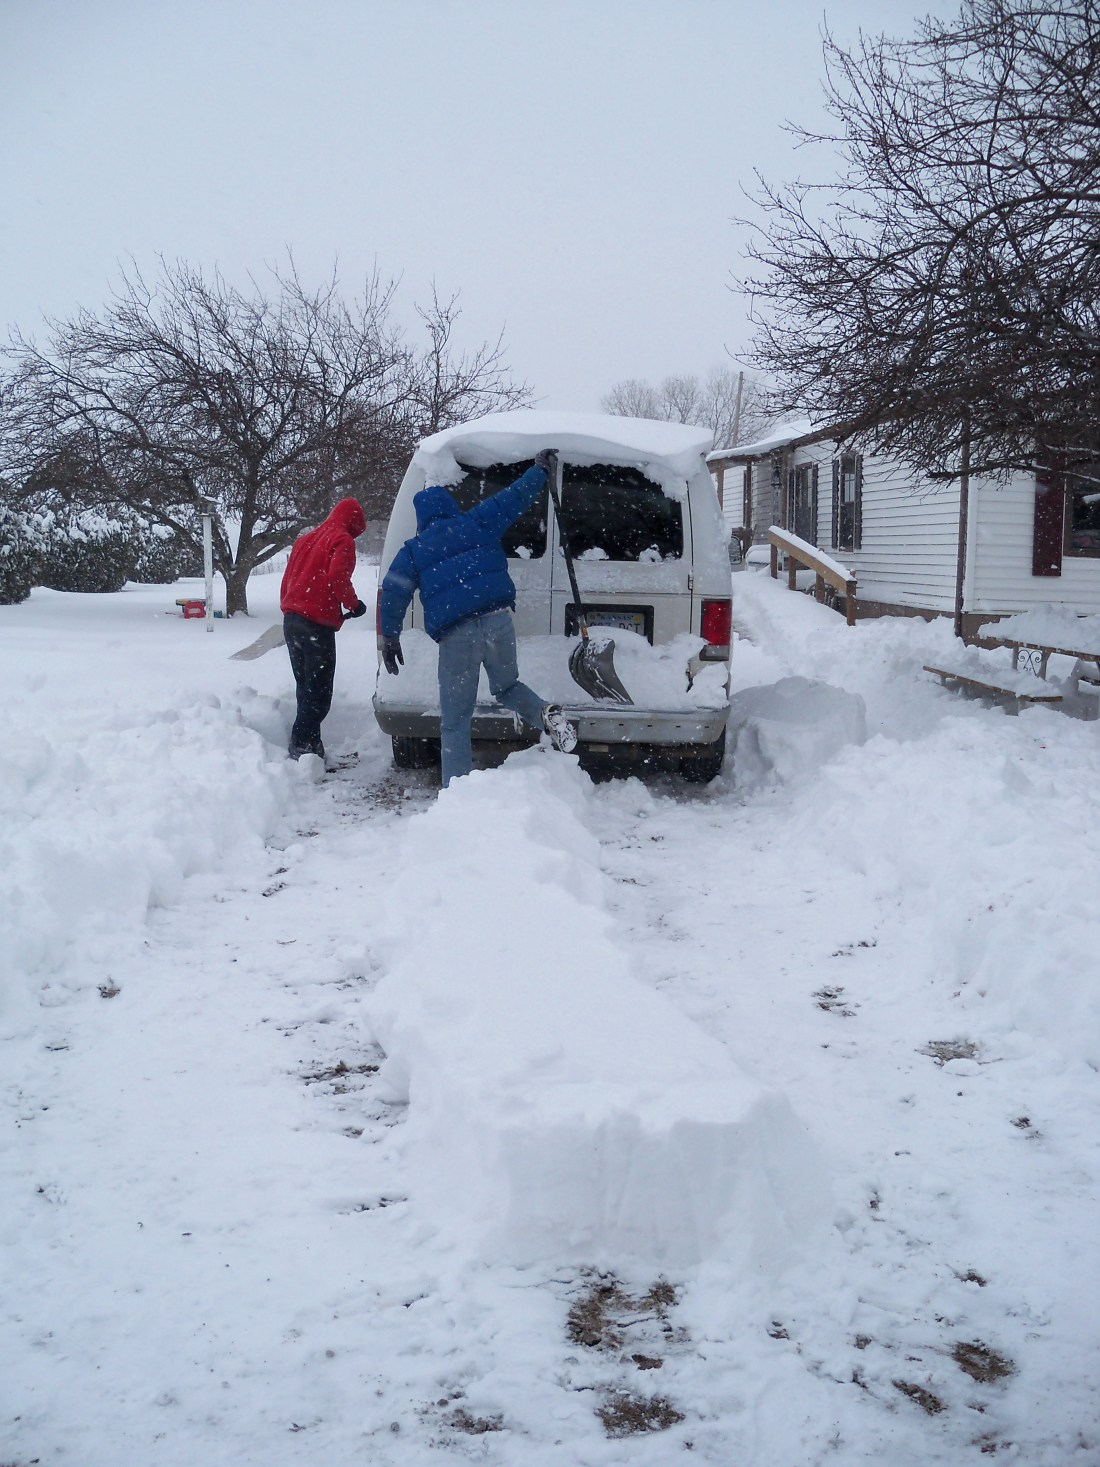 The boys shoveled snow and made necessary paths.